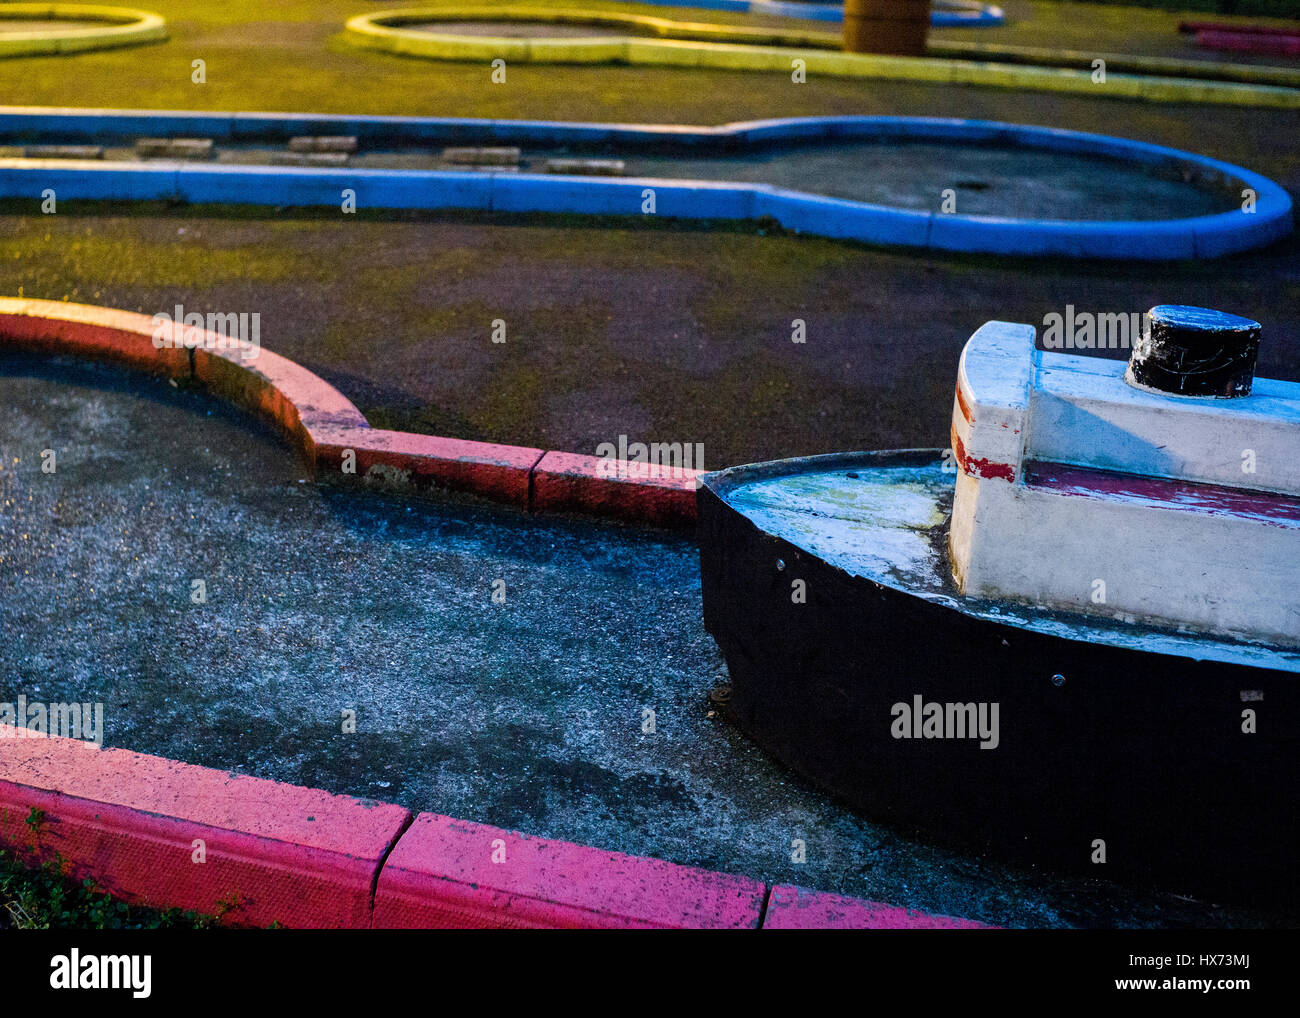 boat model in camden council estate crazy golf playground Stock Photo